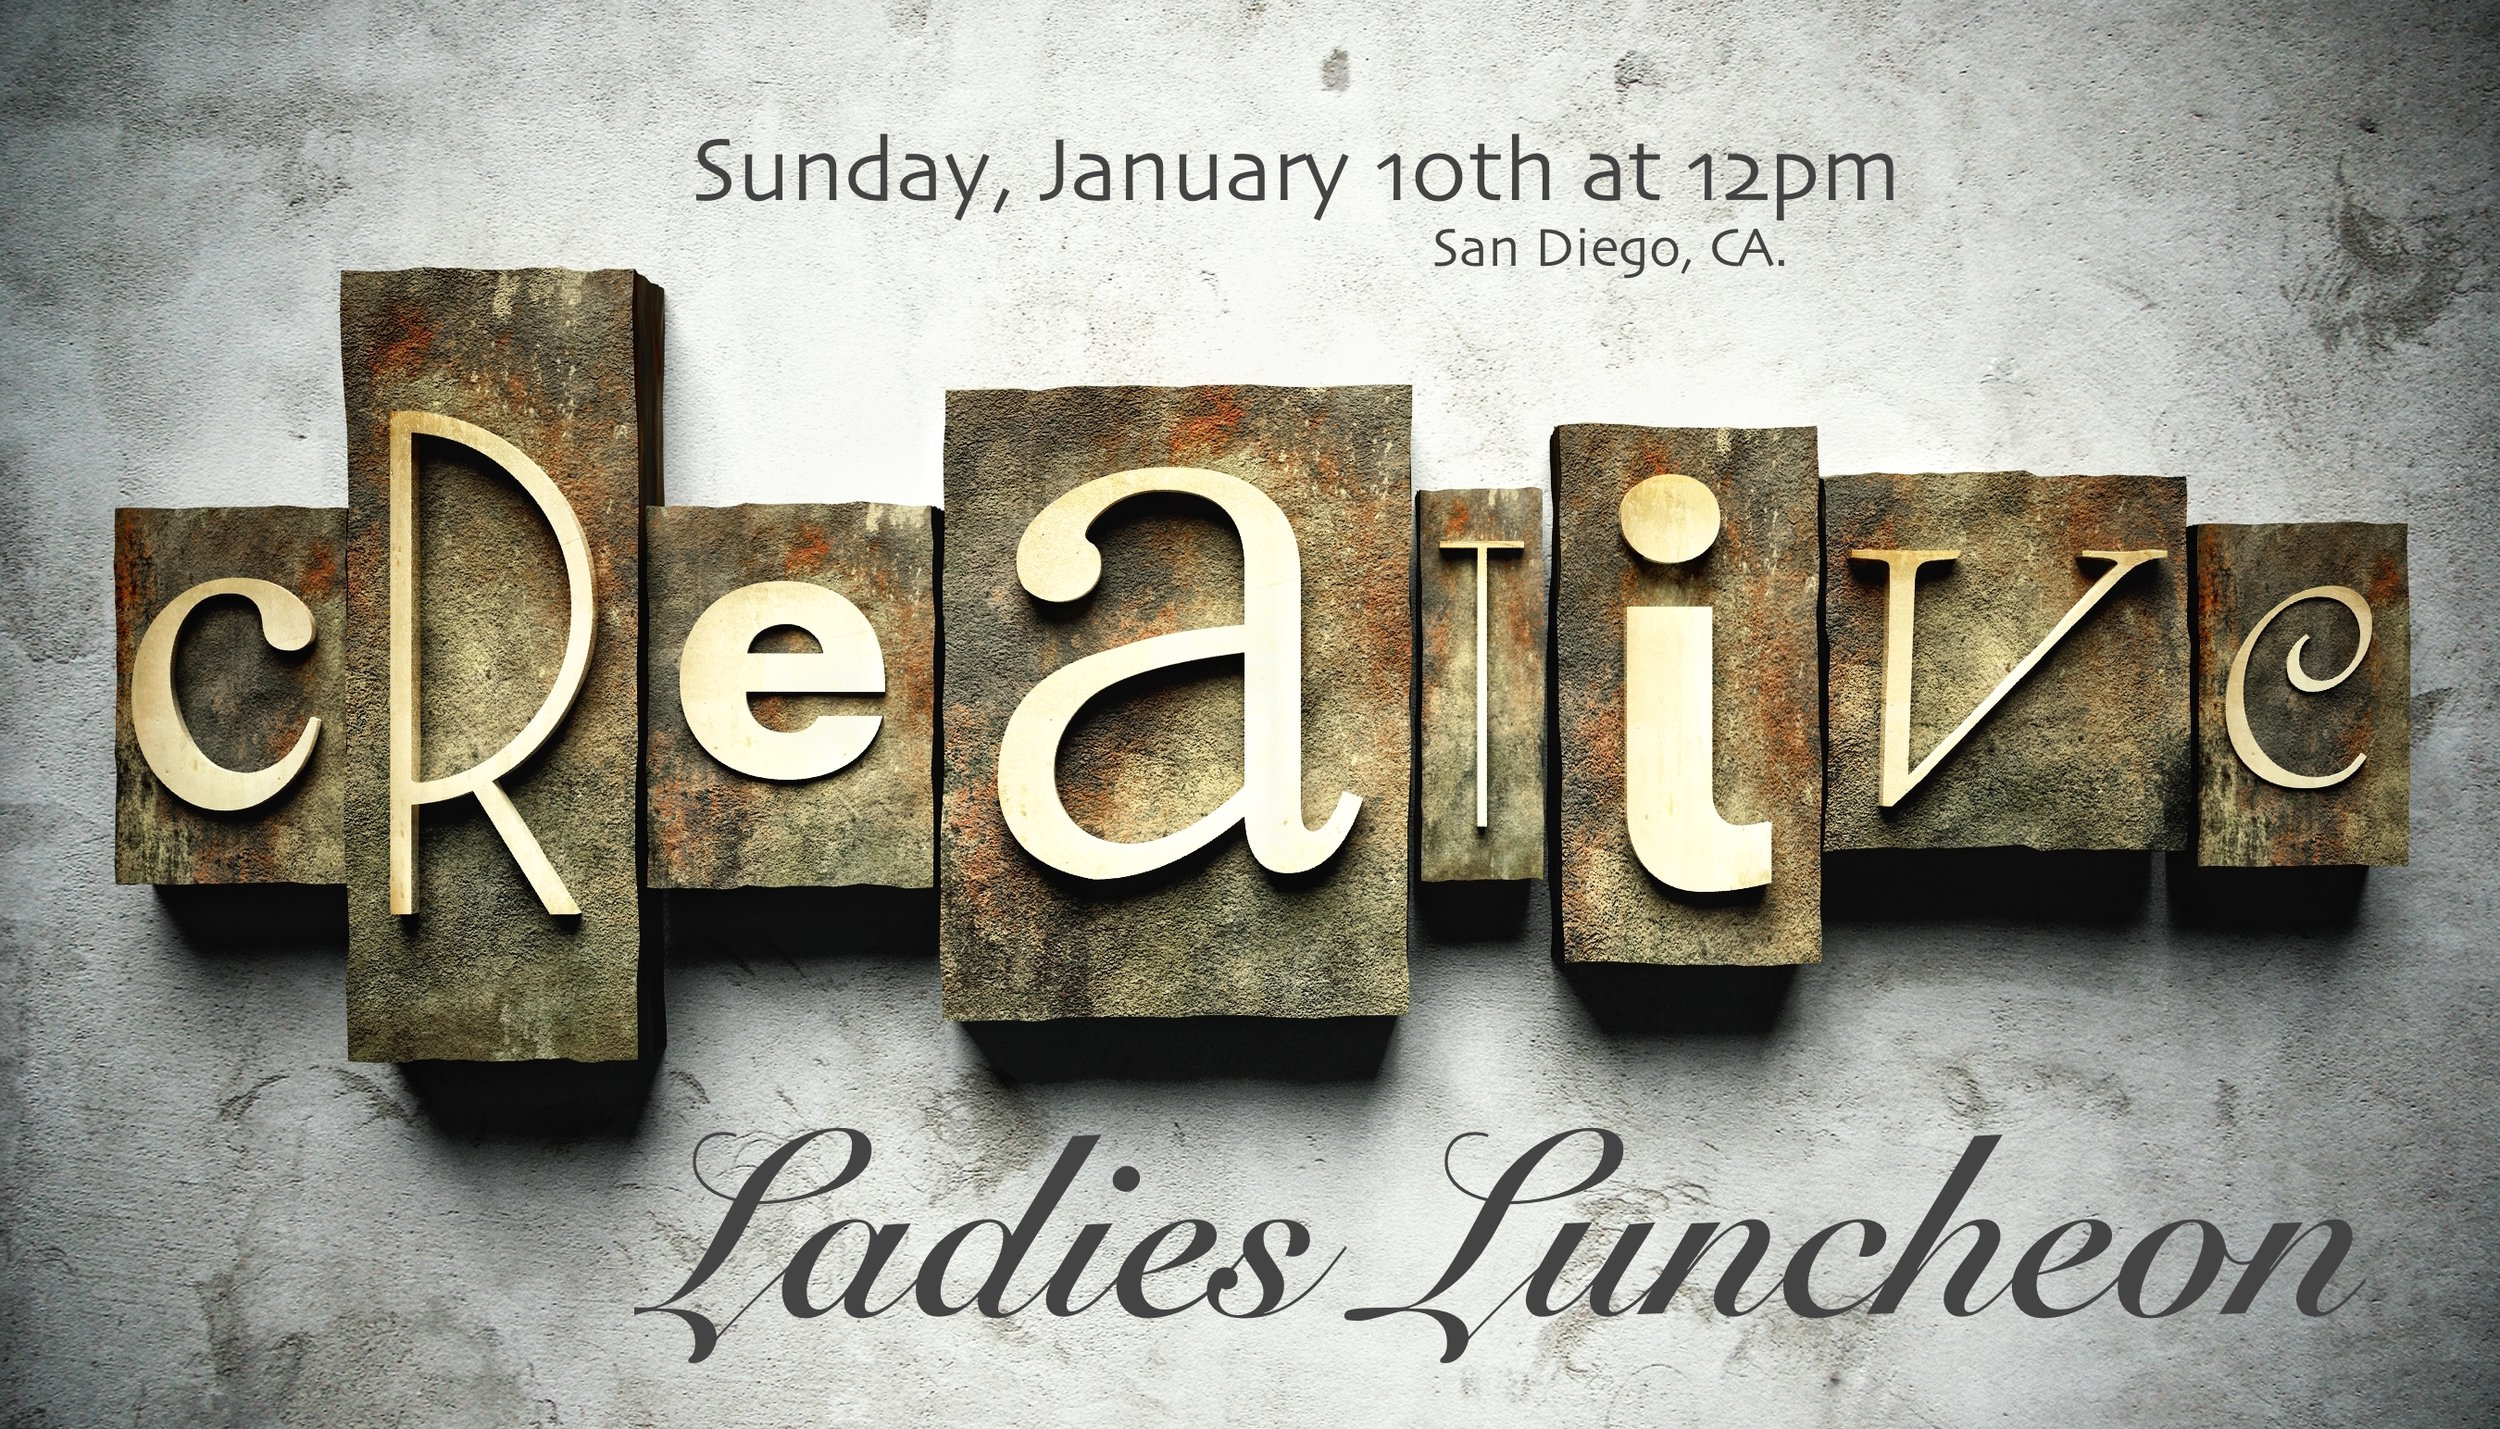 creative ladies luncheon